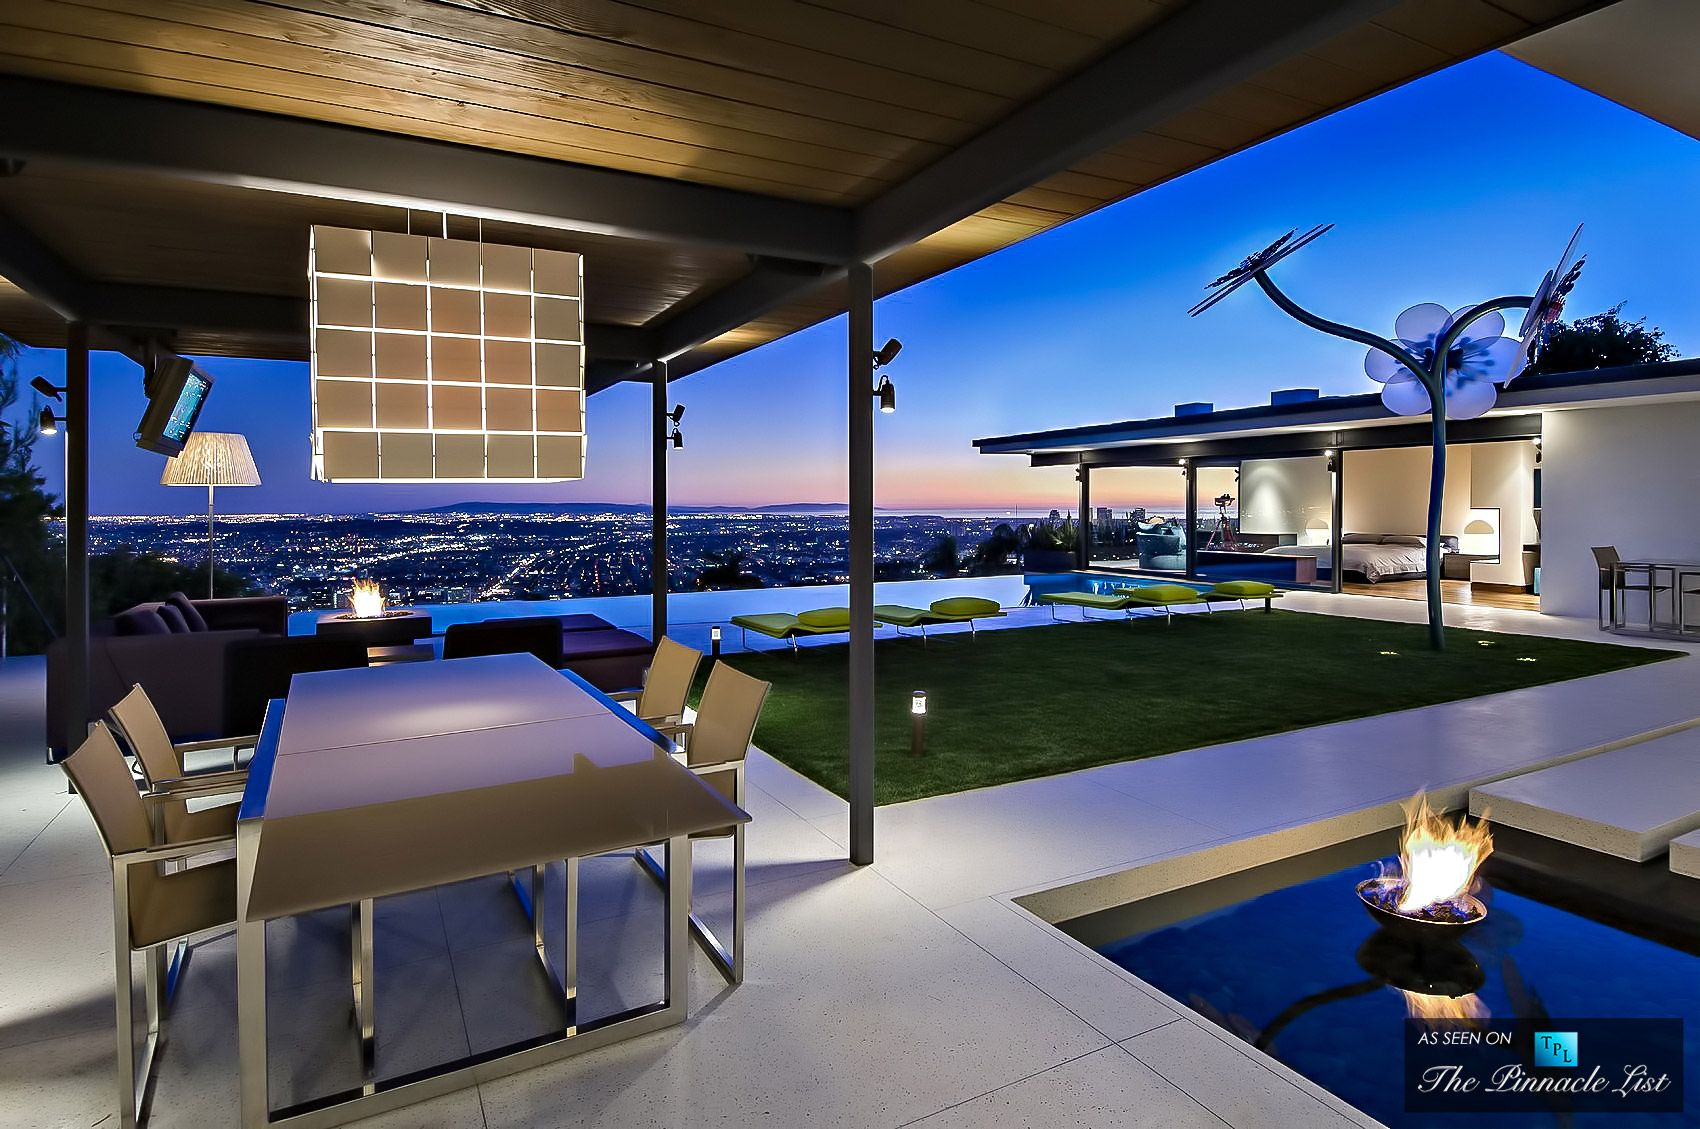 Hopen Place Residence   9010 Hopen Place, Los Angeles, CA This House Is  Just · ArchitectsMatthew PerryOutdoor ...